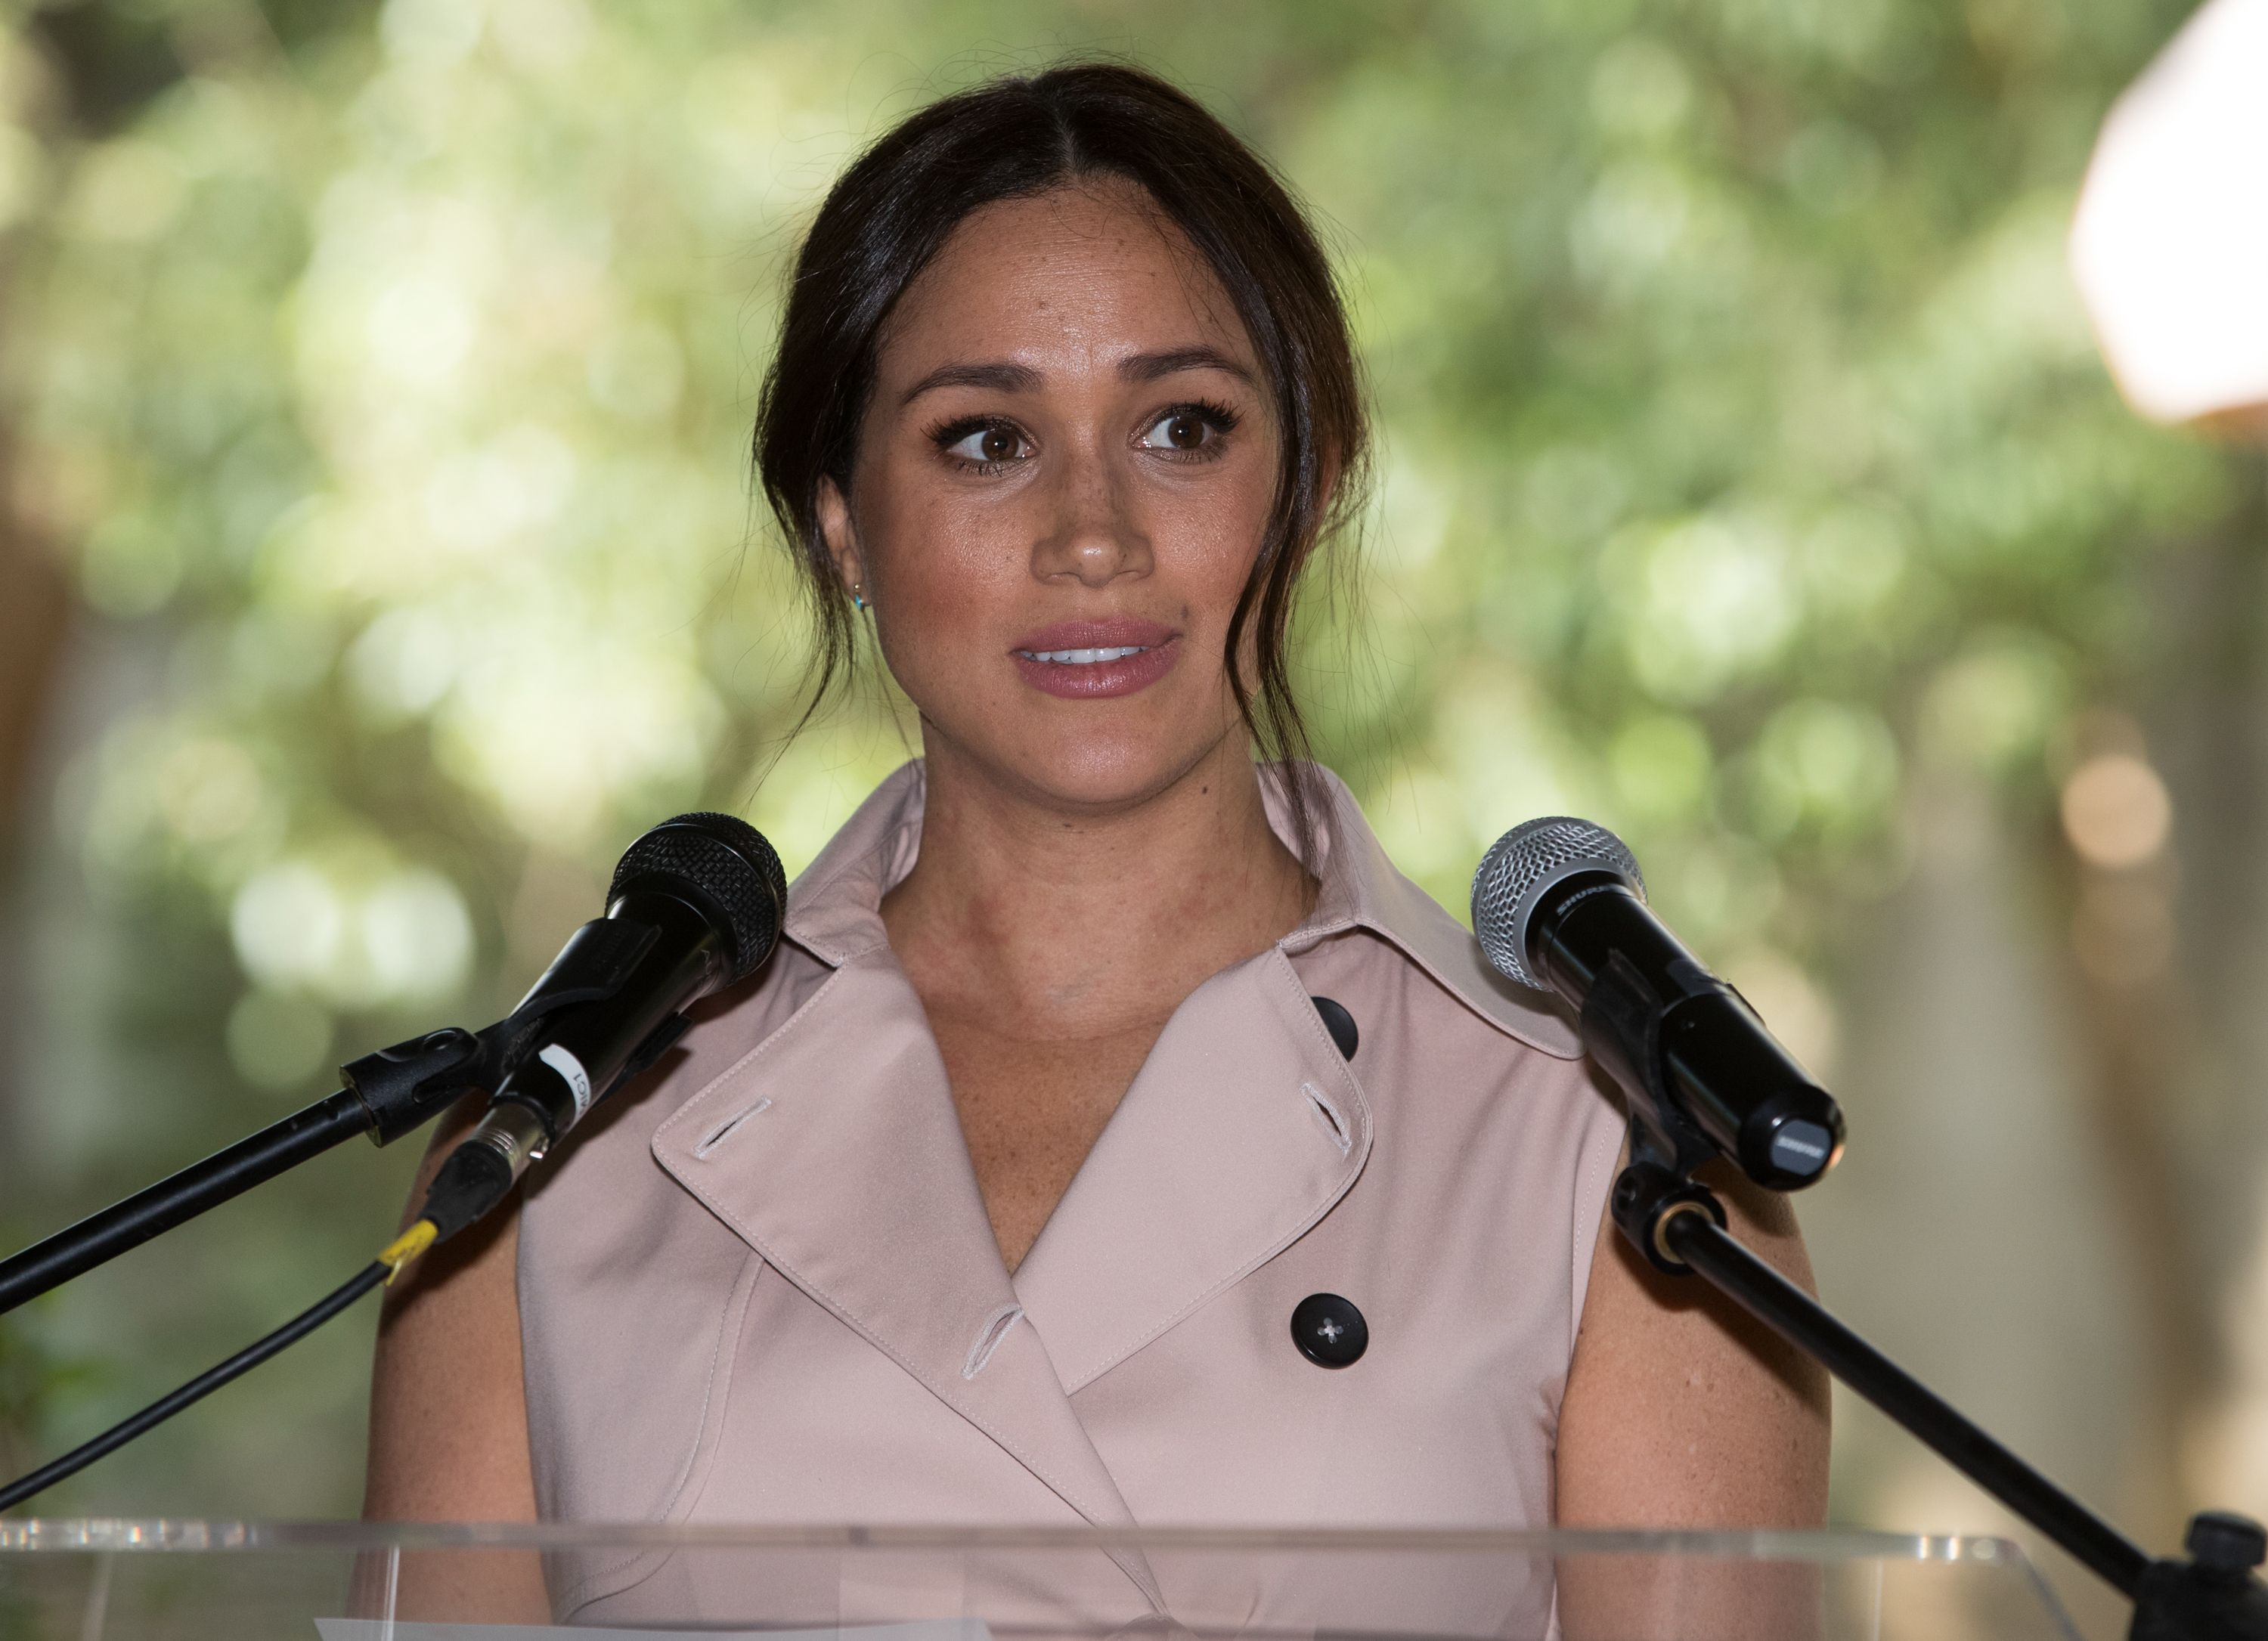 Meghan Markle Responds to Critics Who Say Media Scrutiny Is Just Part of Life in the Public Eye